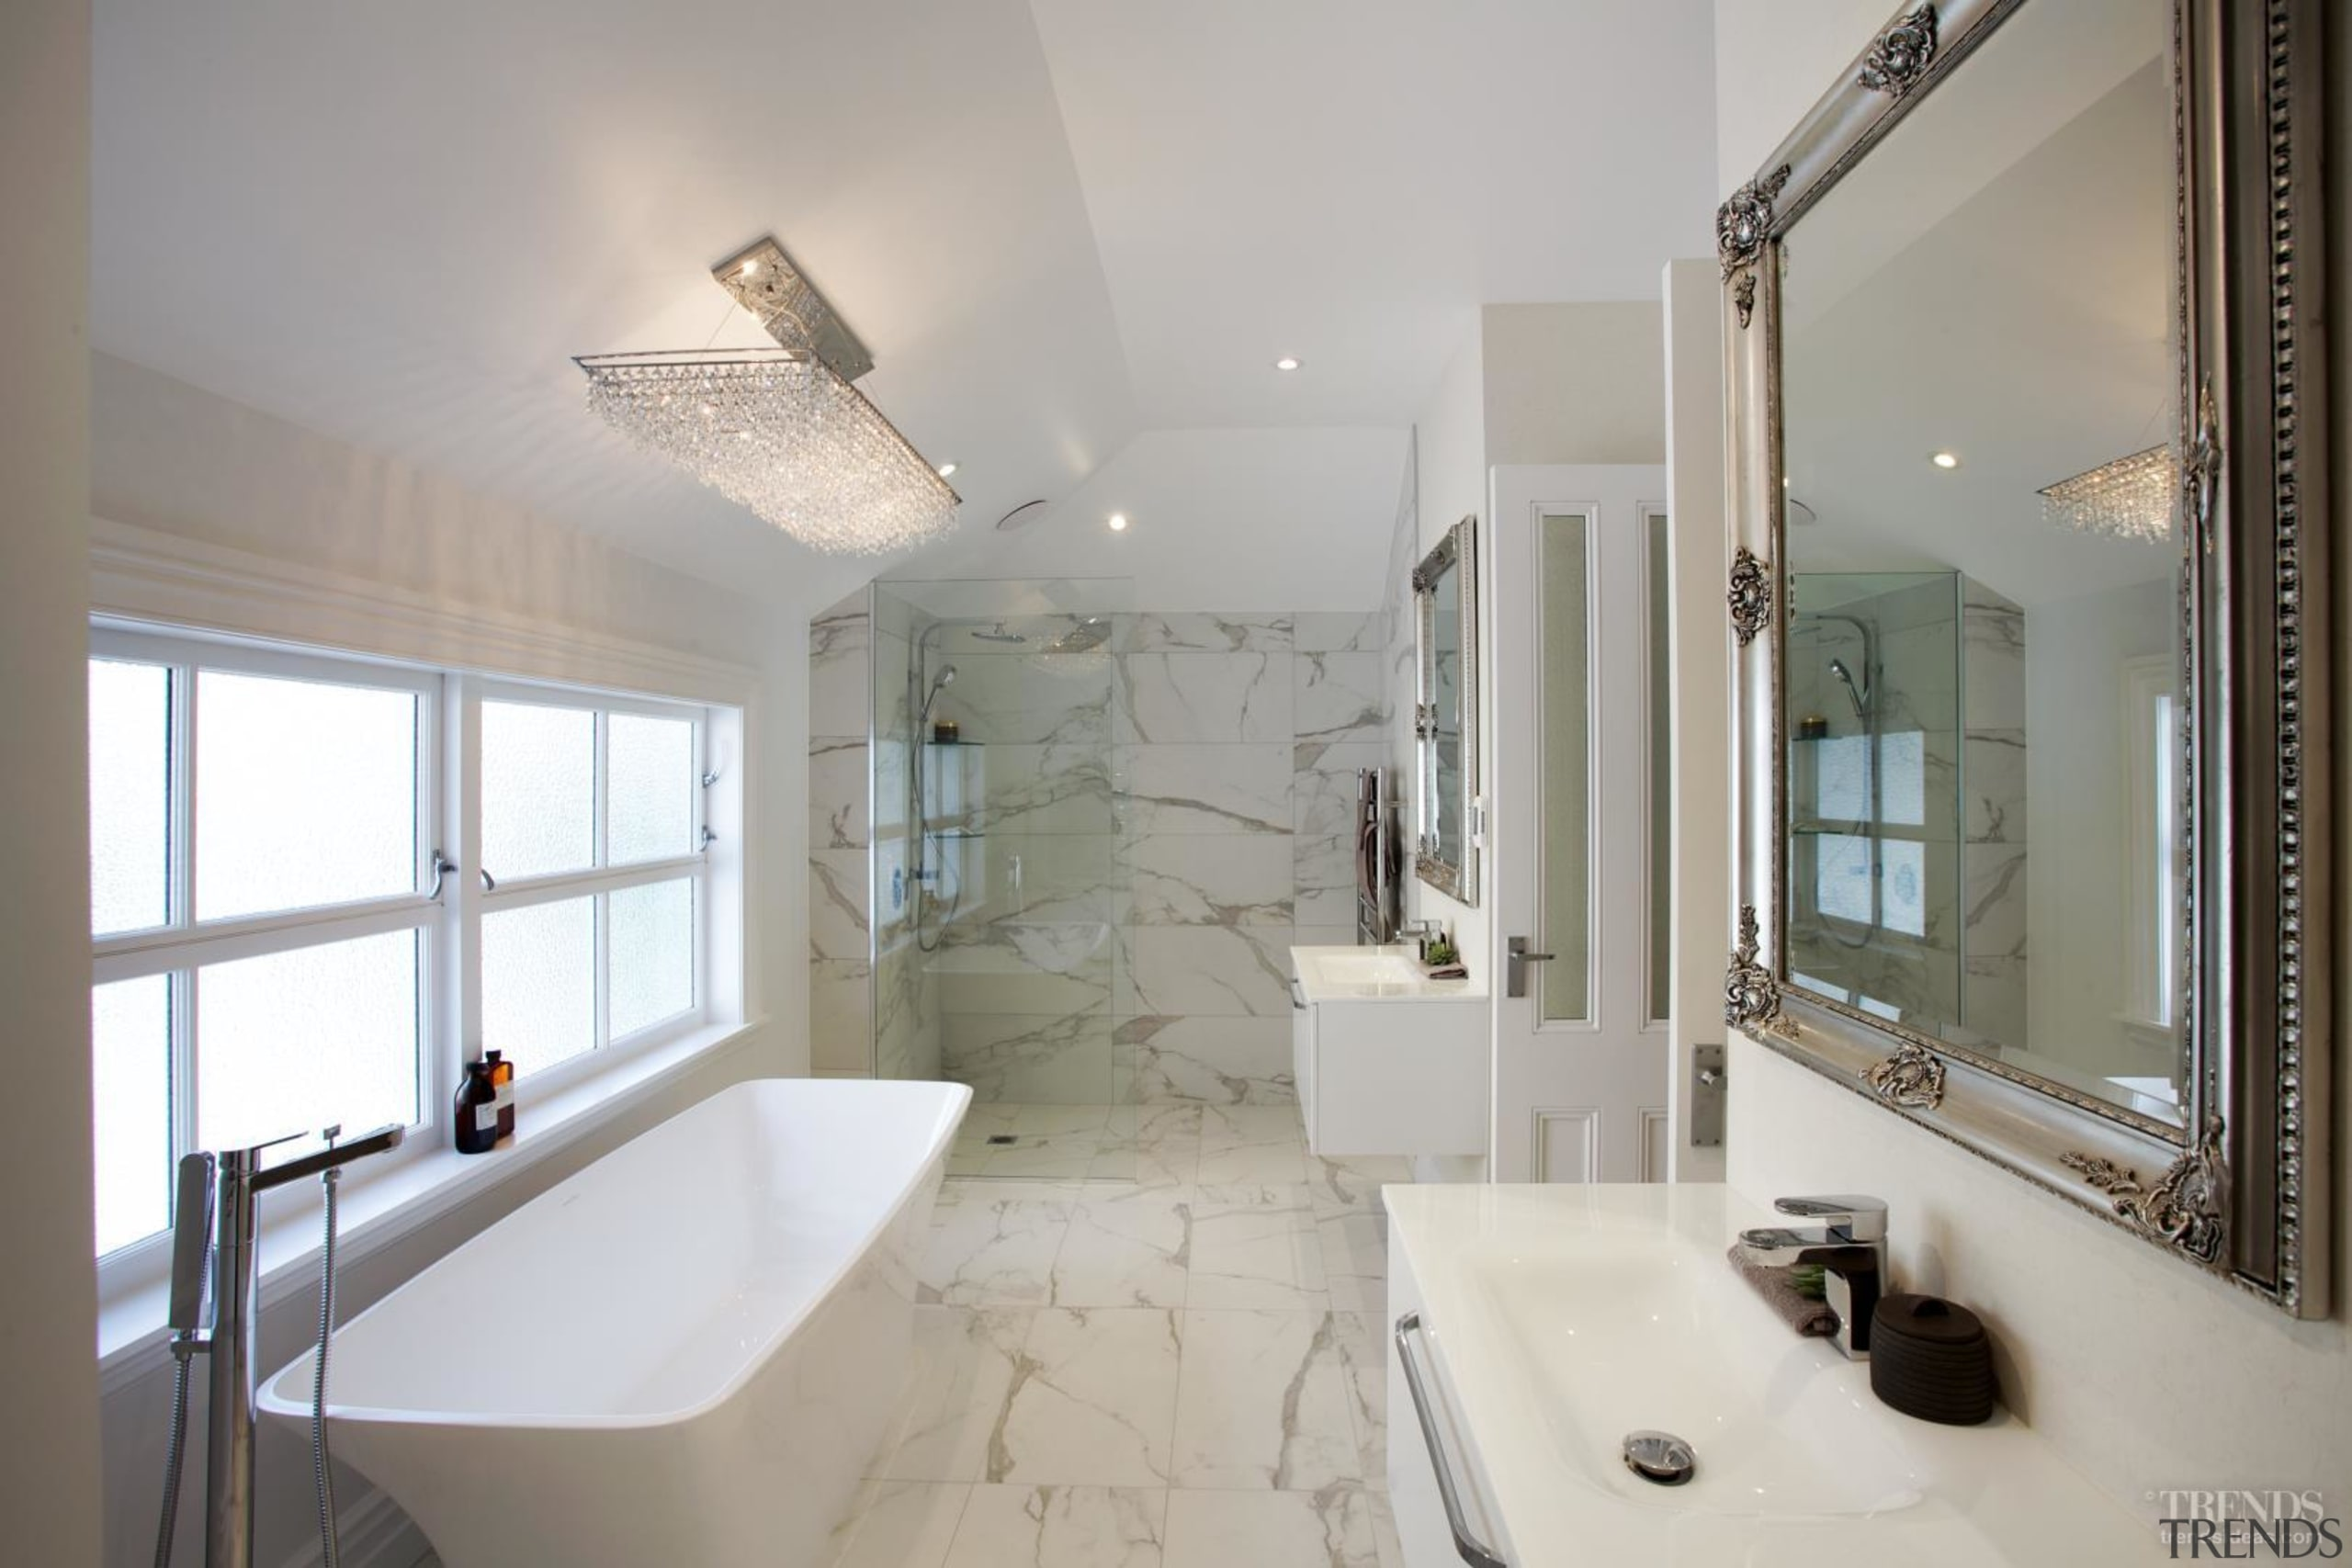 A sleek bath filler contrasts old-world mirror frames, architecture, bathroom, ceiling, daylighting, estate, home, interior design, property, real estate, room, window, gray